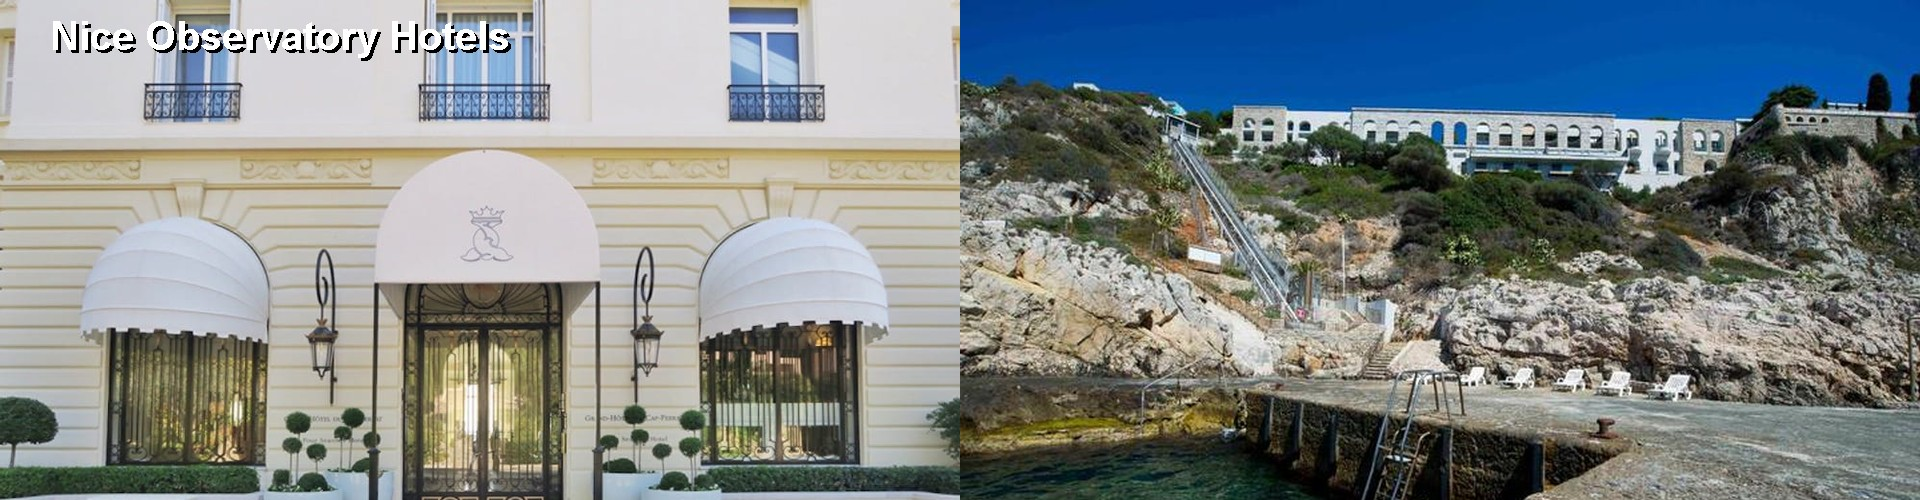 5 Best Hotels near Nice Observatory